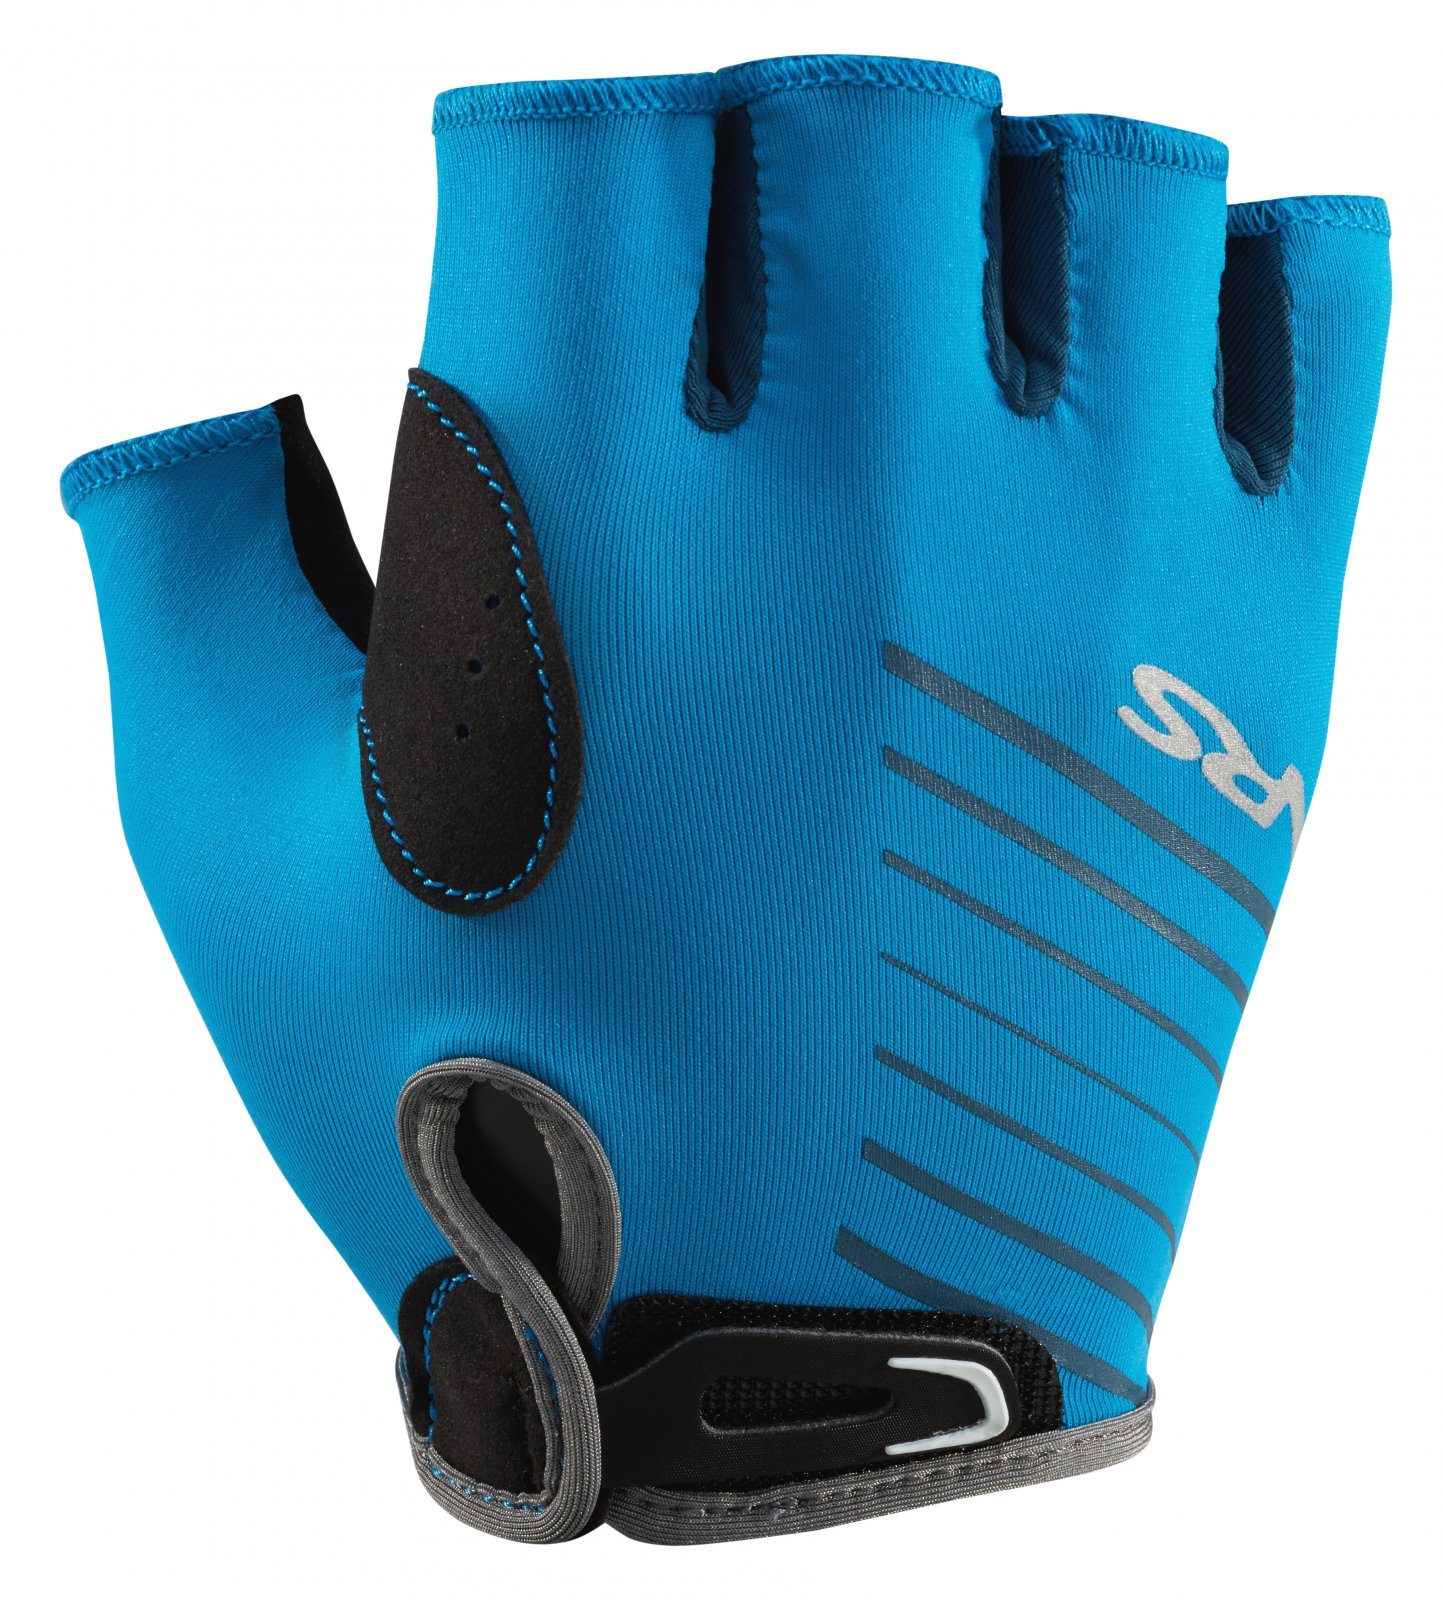 2018 NRS Men's Boater's Gloves